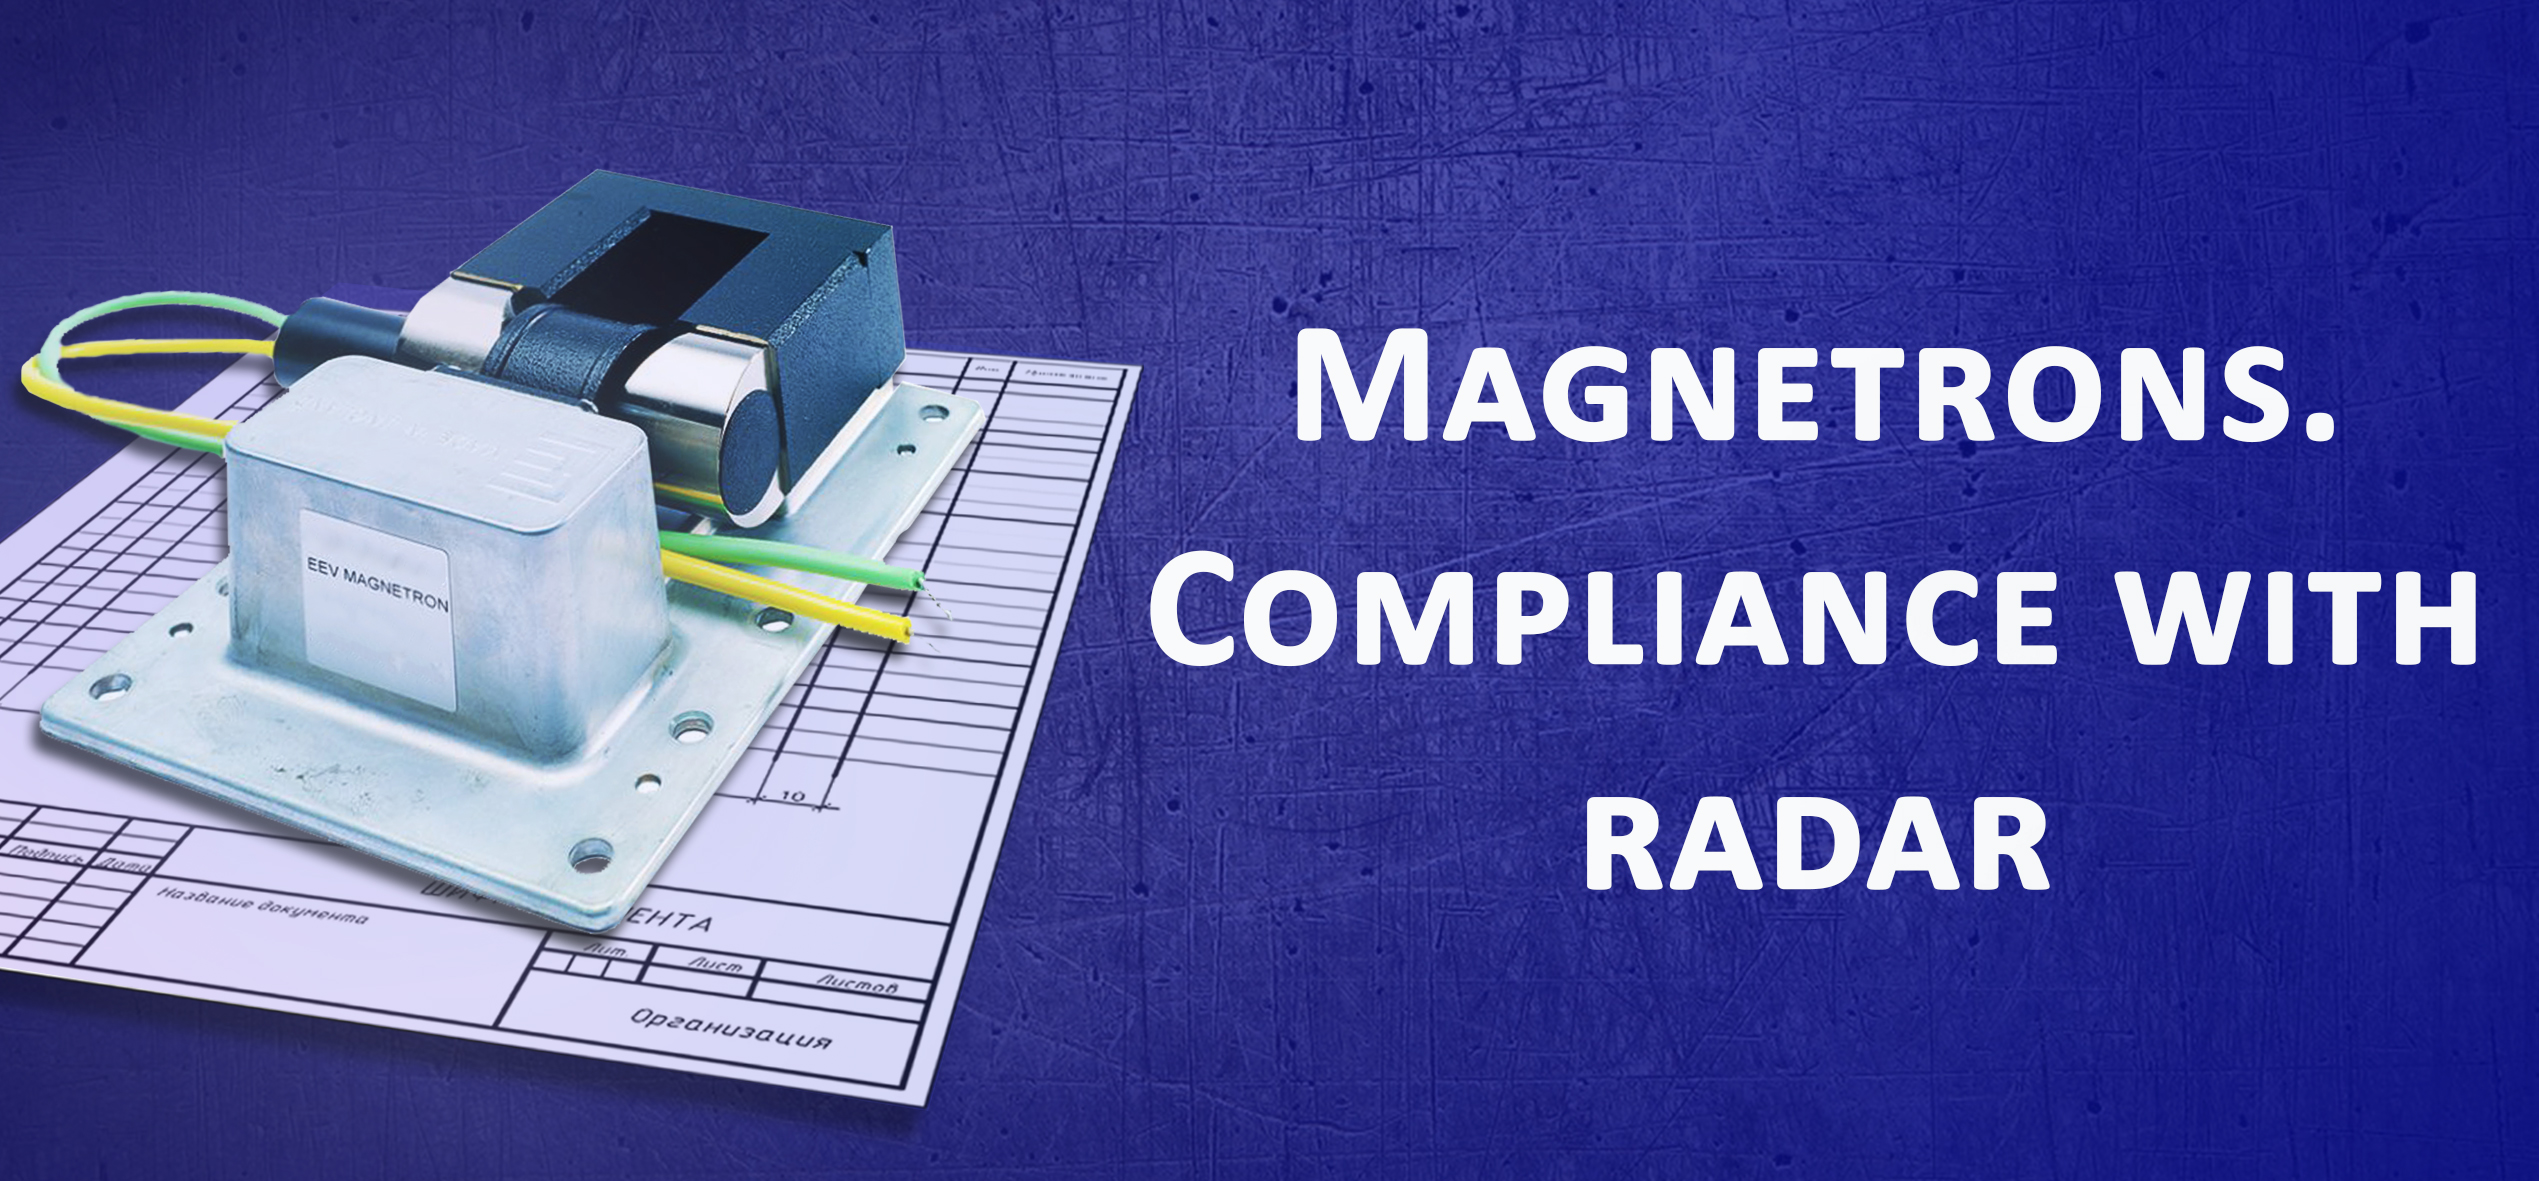 Magnetrons. Compliance with radar.